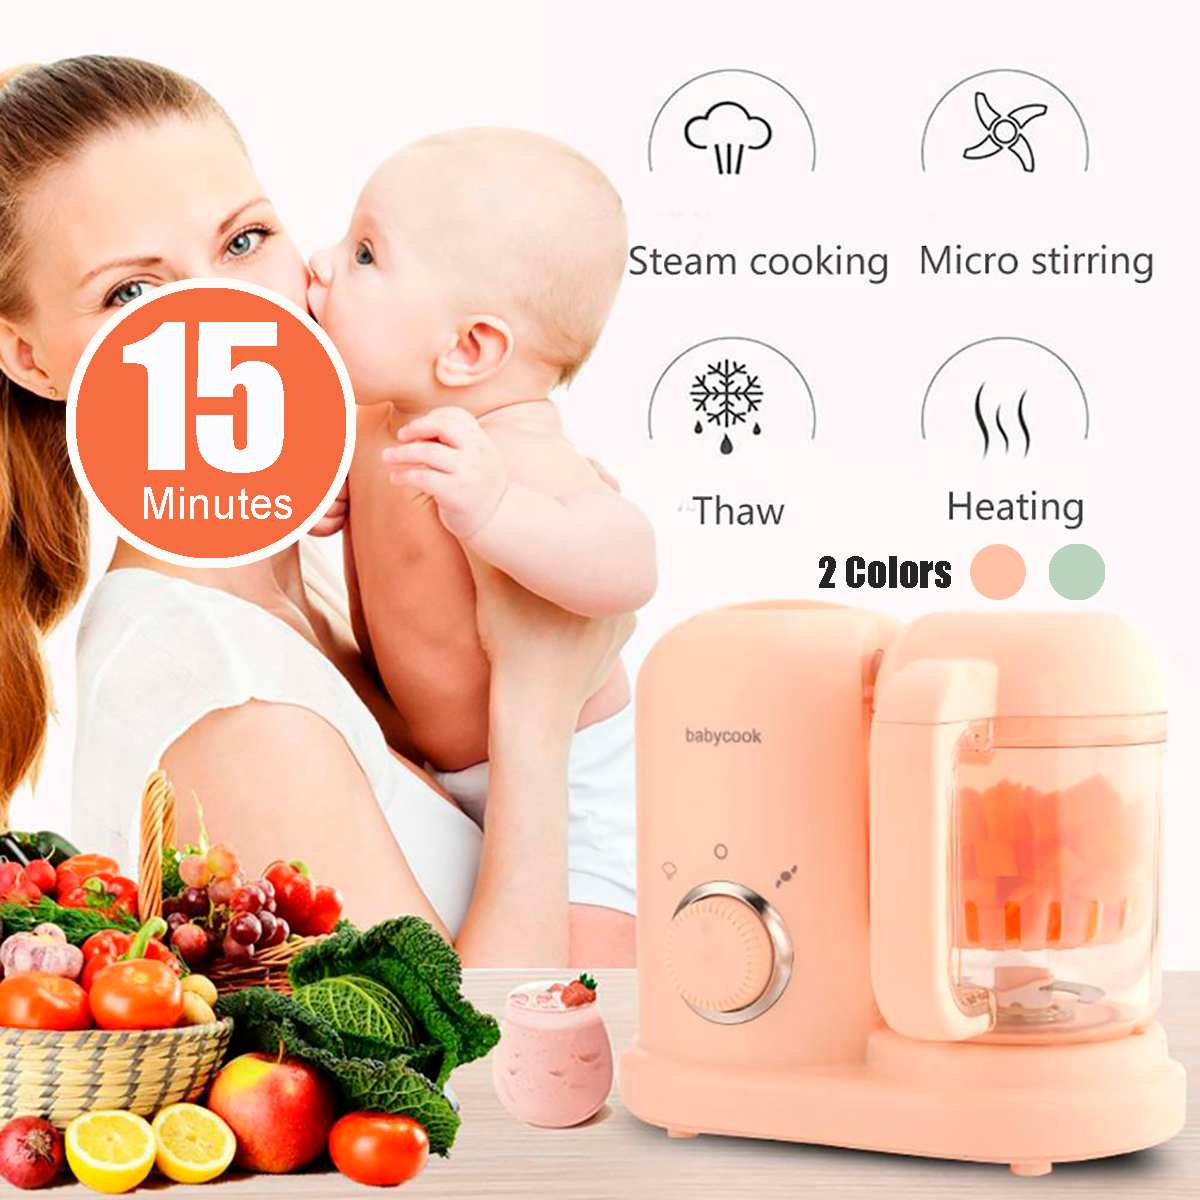 220V 50Hz Multifunction Baby Food Cooking Maker Steamer Mixing Grinder Blenders Processor 190ml Capacity 2 Colors Shatterproof